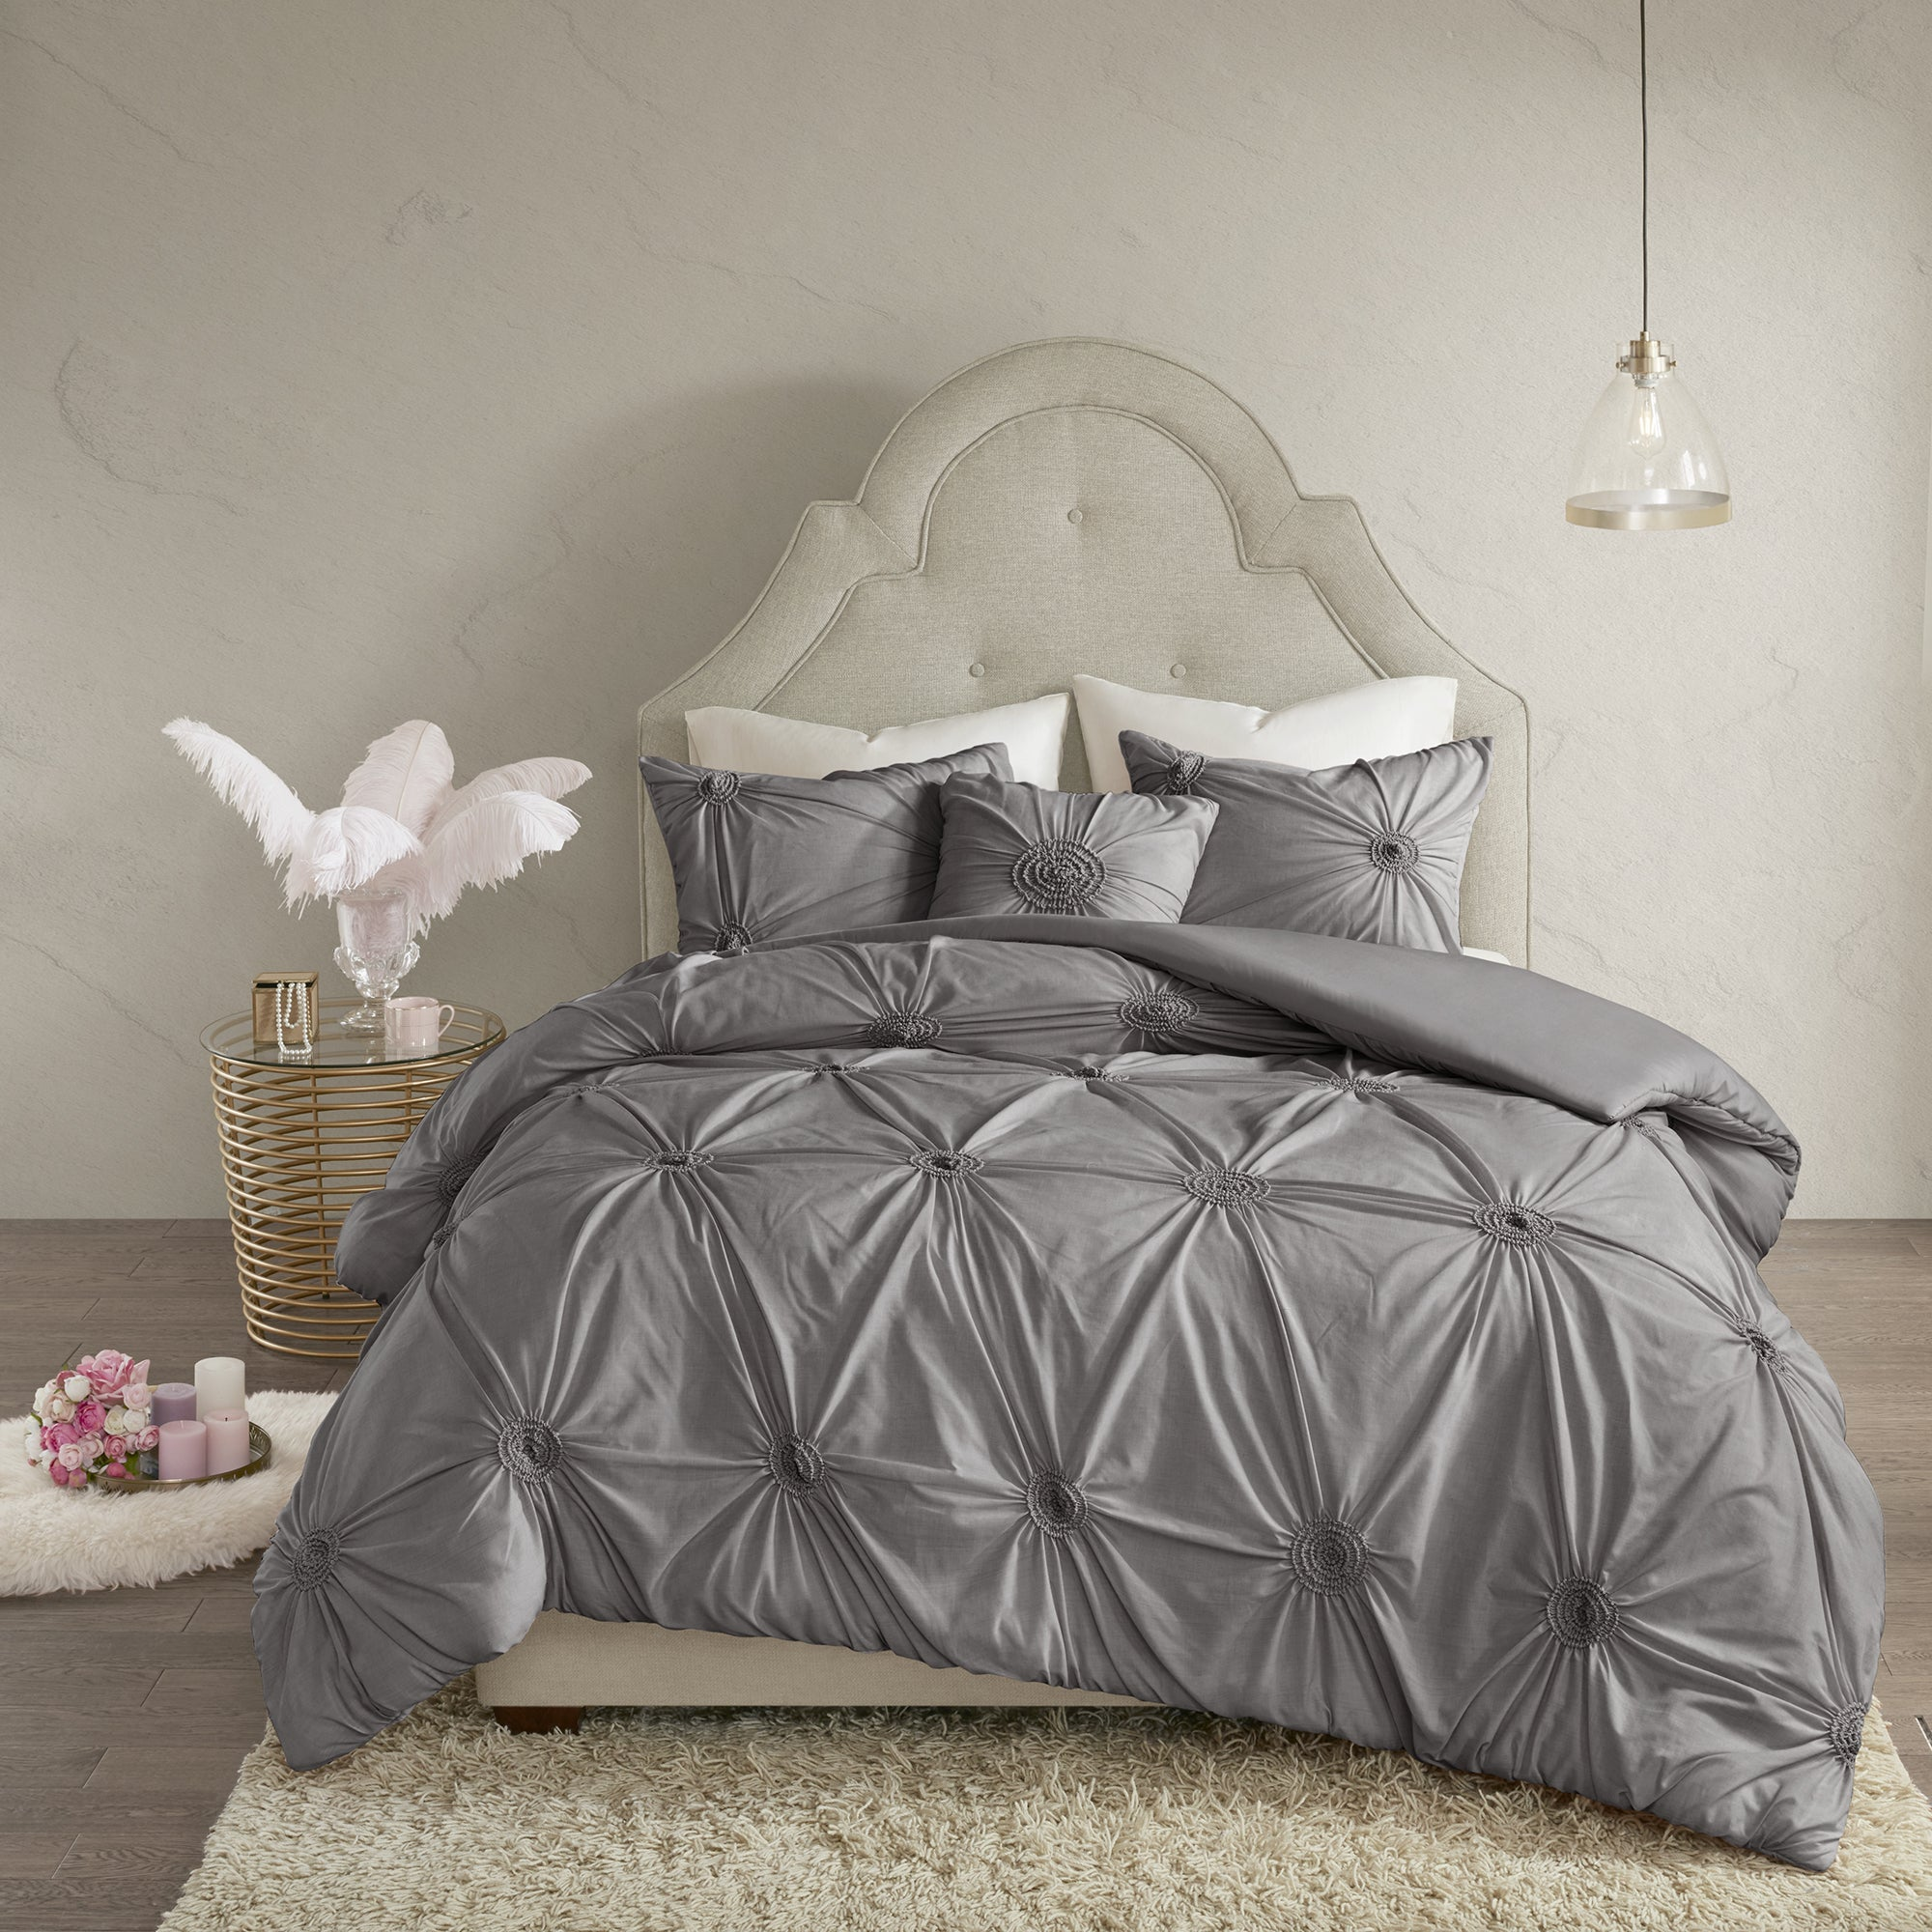 cover home coverlet product quilted damaskquilt gray ienjoy duvet dark damask set darkgray